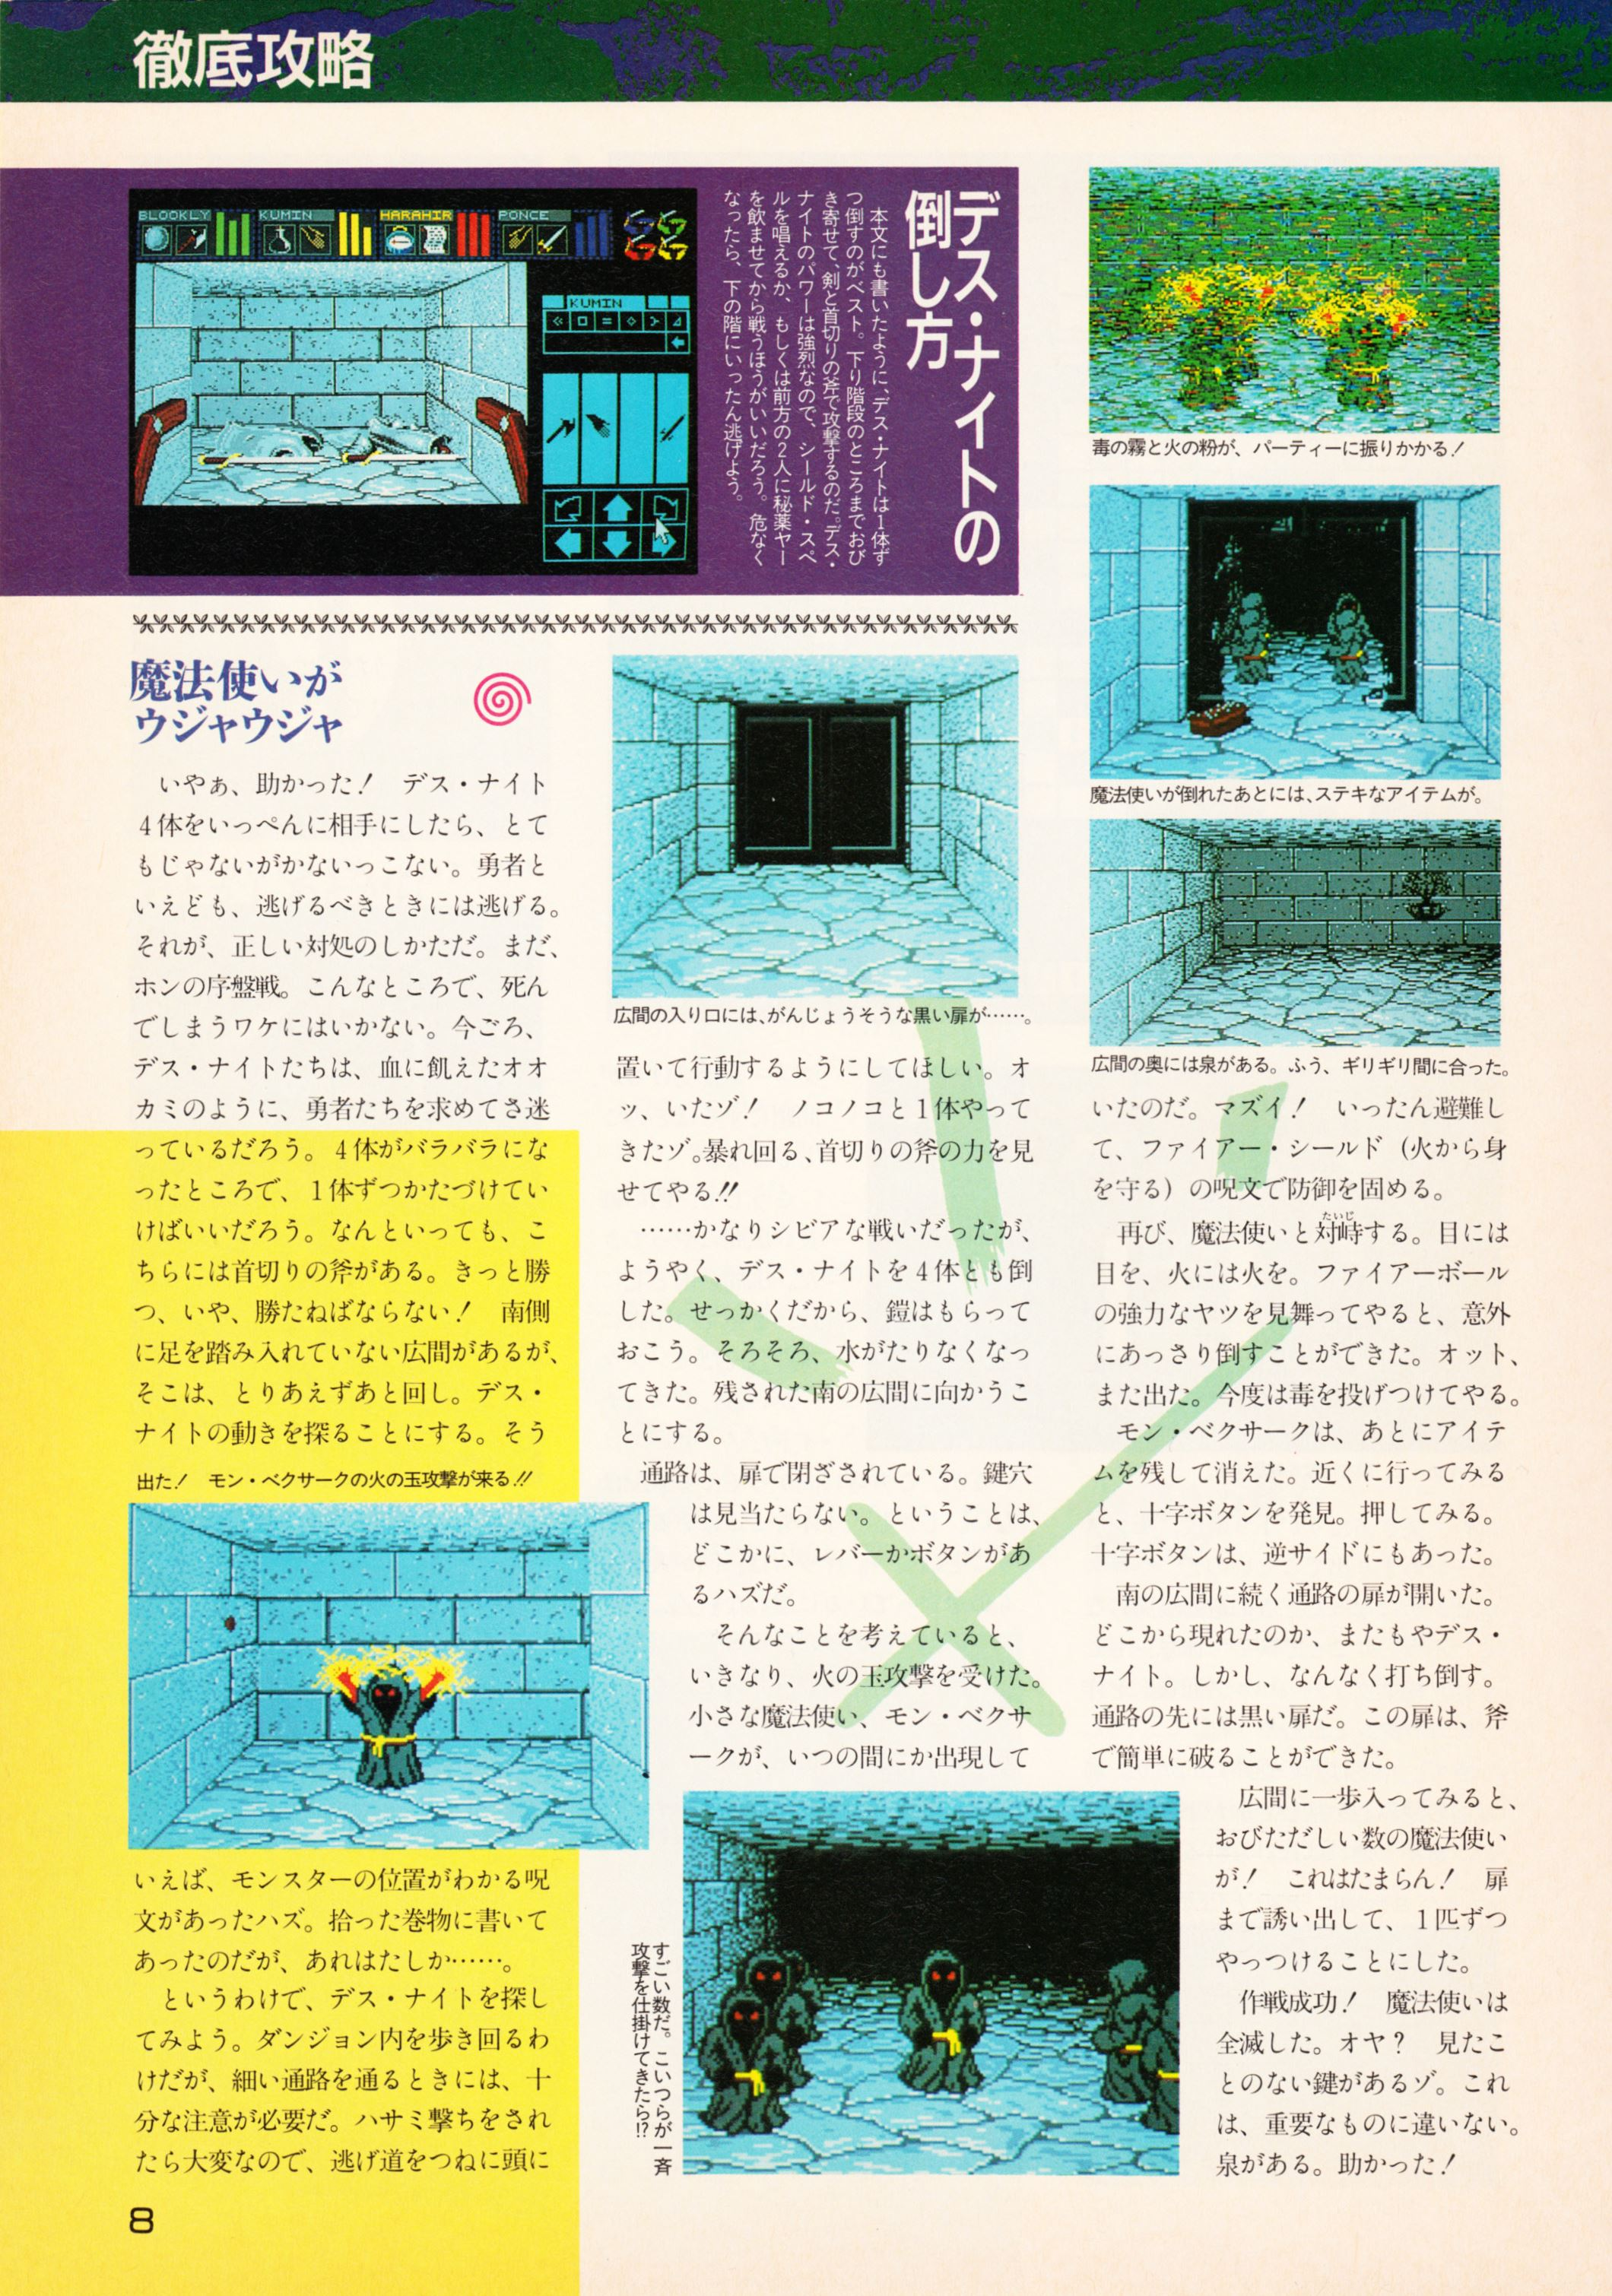 Supplement 1 - Chaos Strikes Back Companion Guide Guide published in Japanese magazine 'Popcom', Vol 9 No 2 01 February 1991, Page 10